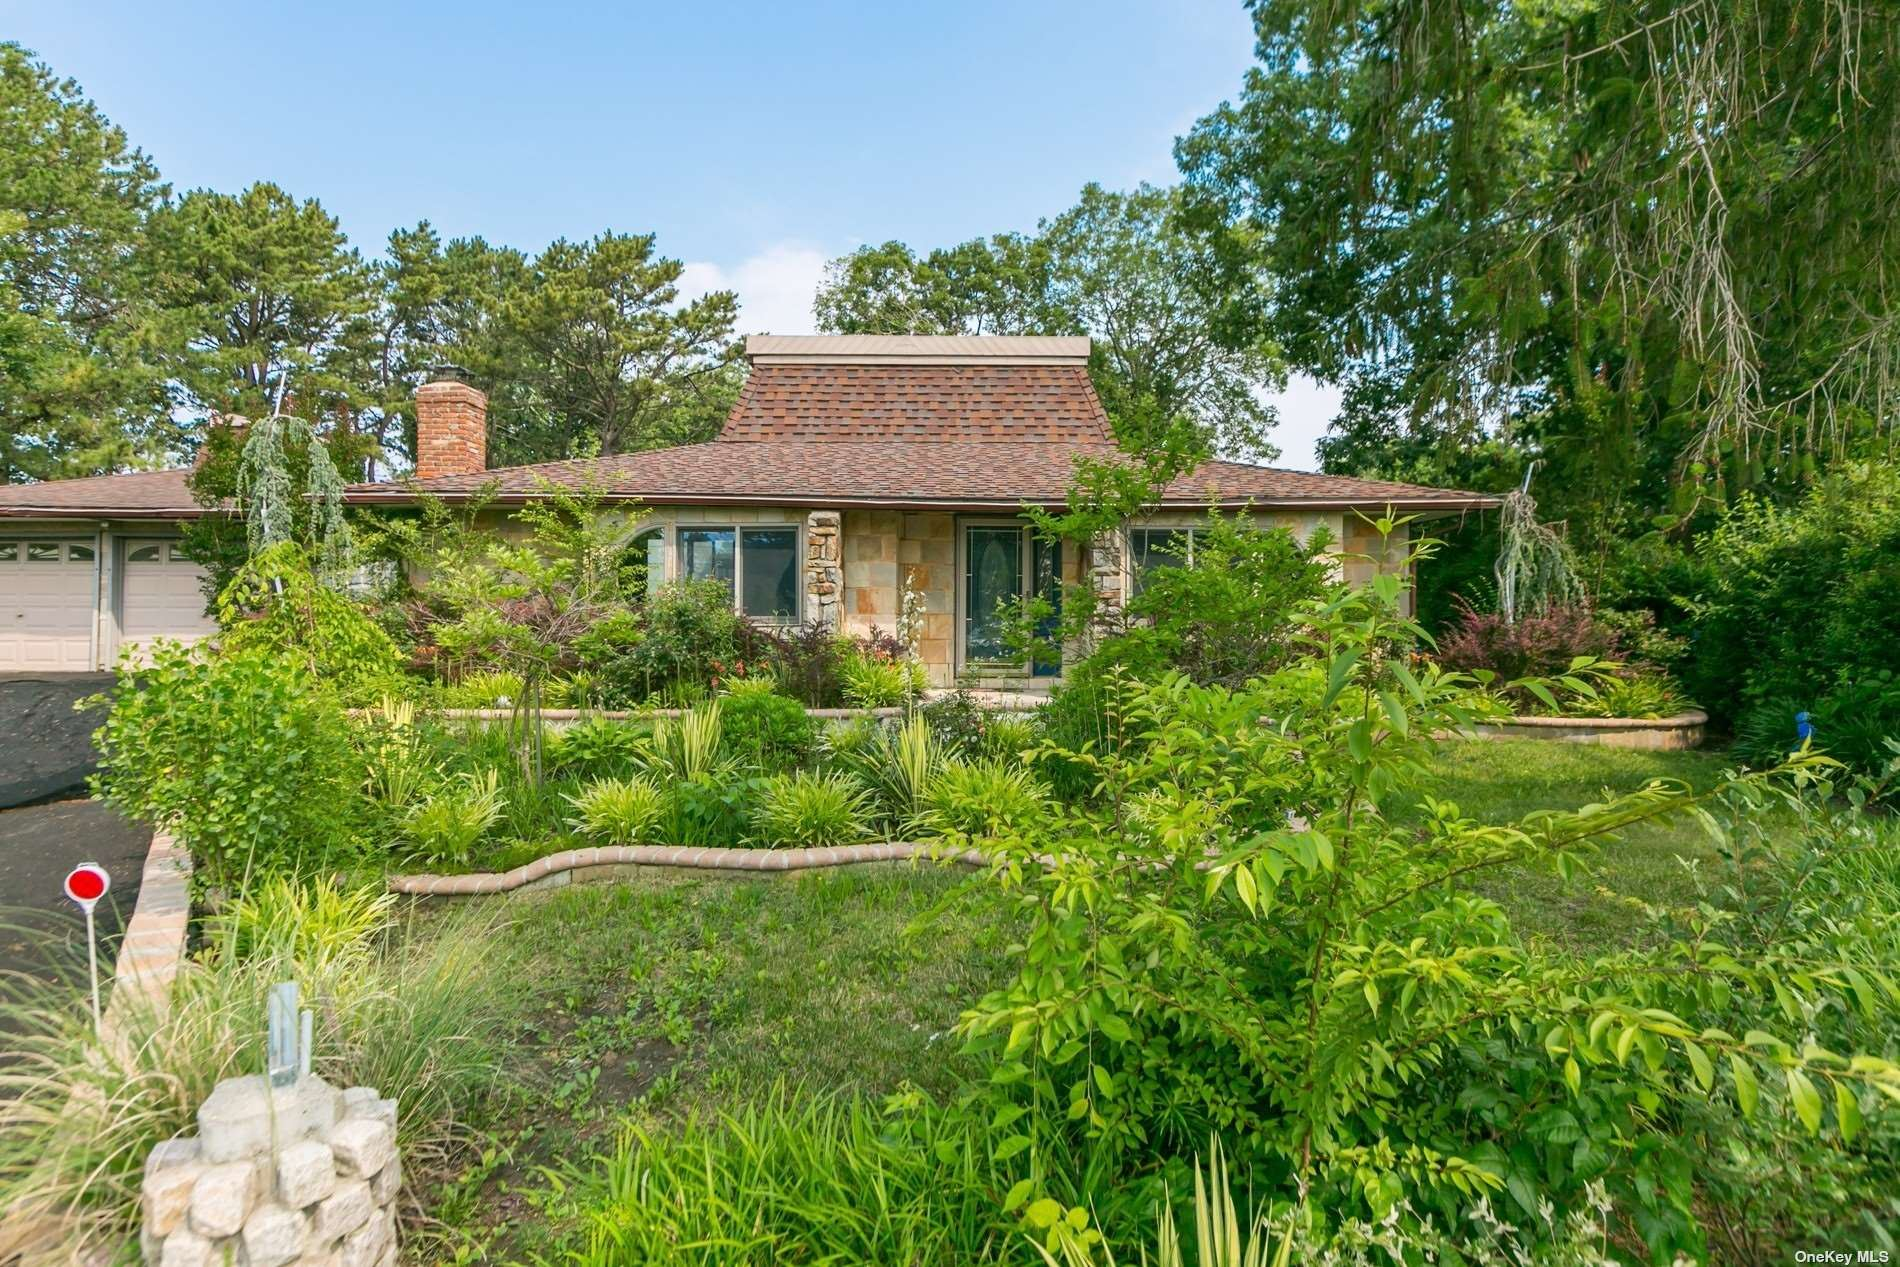 2 Victoria Circle, East Patchogue, NY 11772 - #: 3339937